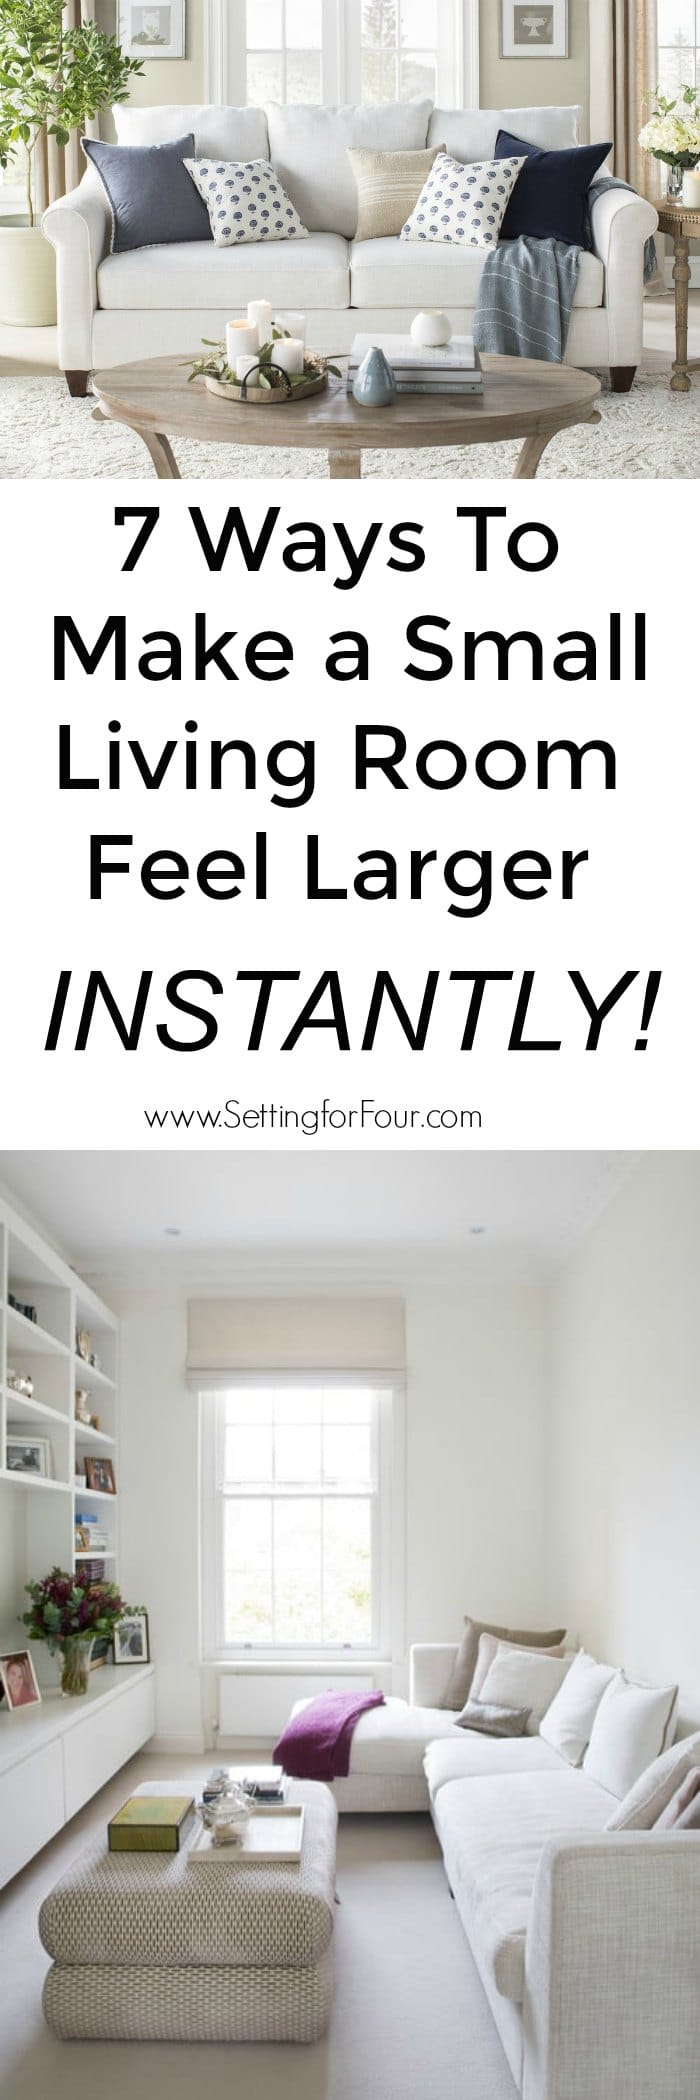 7 Ways To Make A Small Living Room Feel Larger Instantly! #decor #homedecor #livingroom #interiordesign #decorating